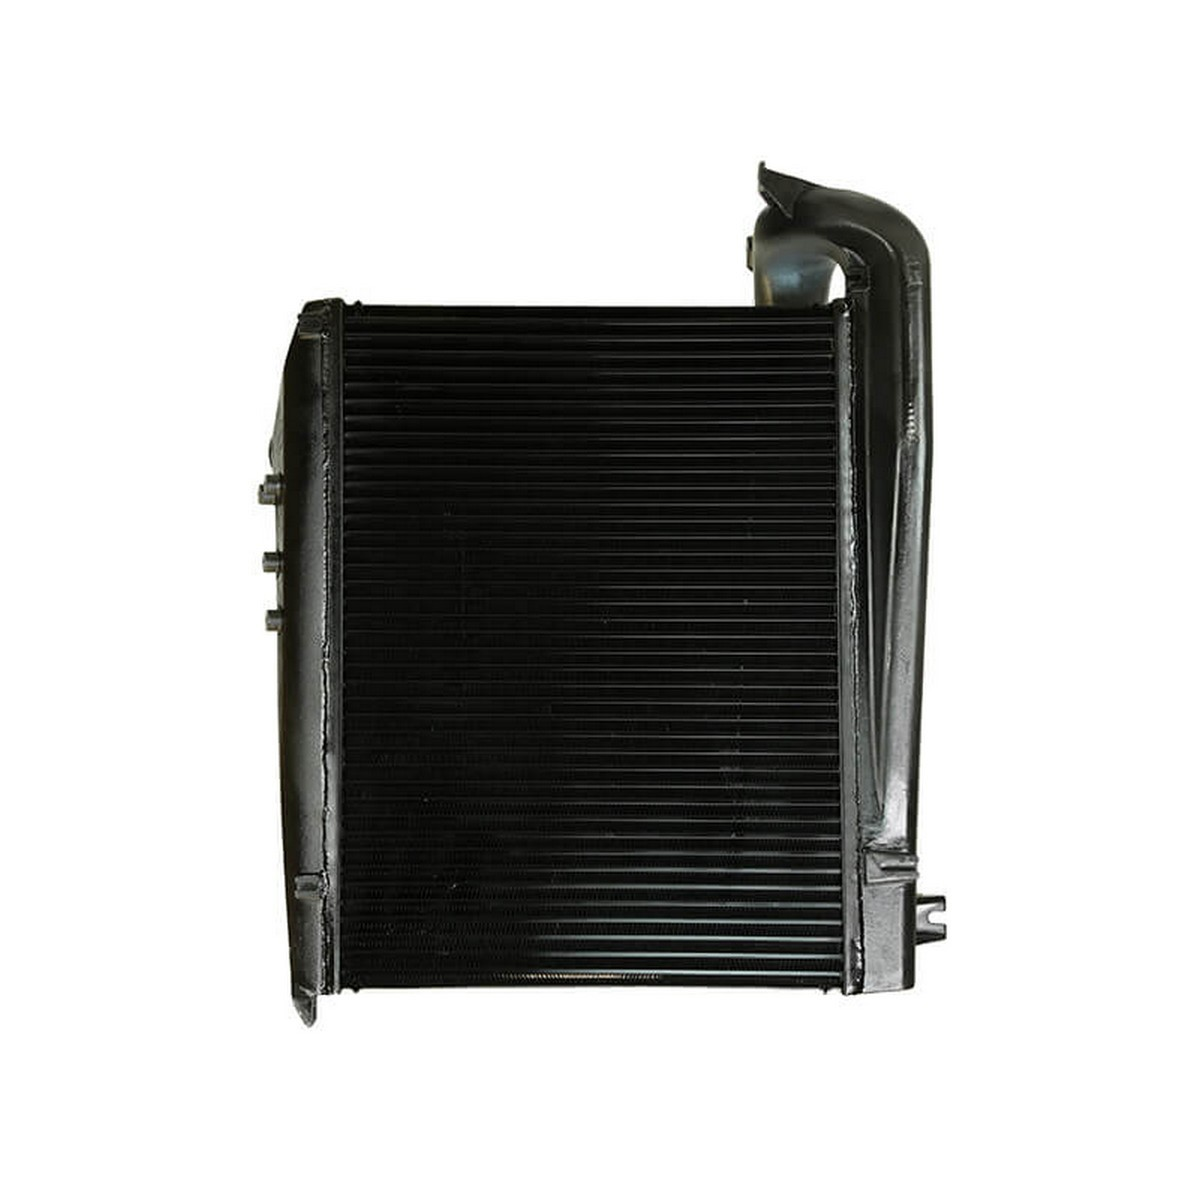 freightliner argosy 92 08 charge air cooler oem 124224000 2